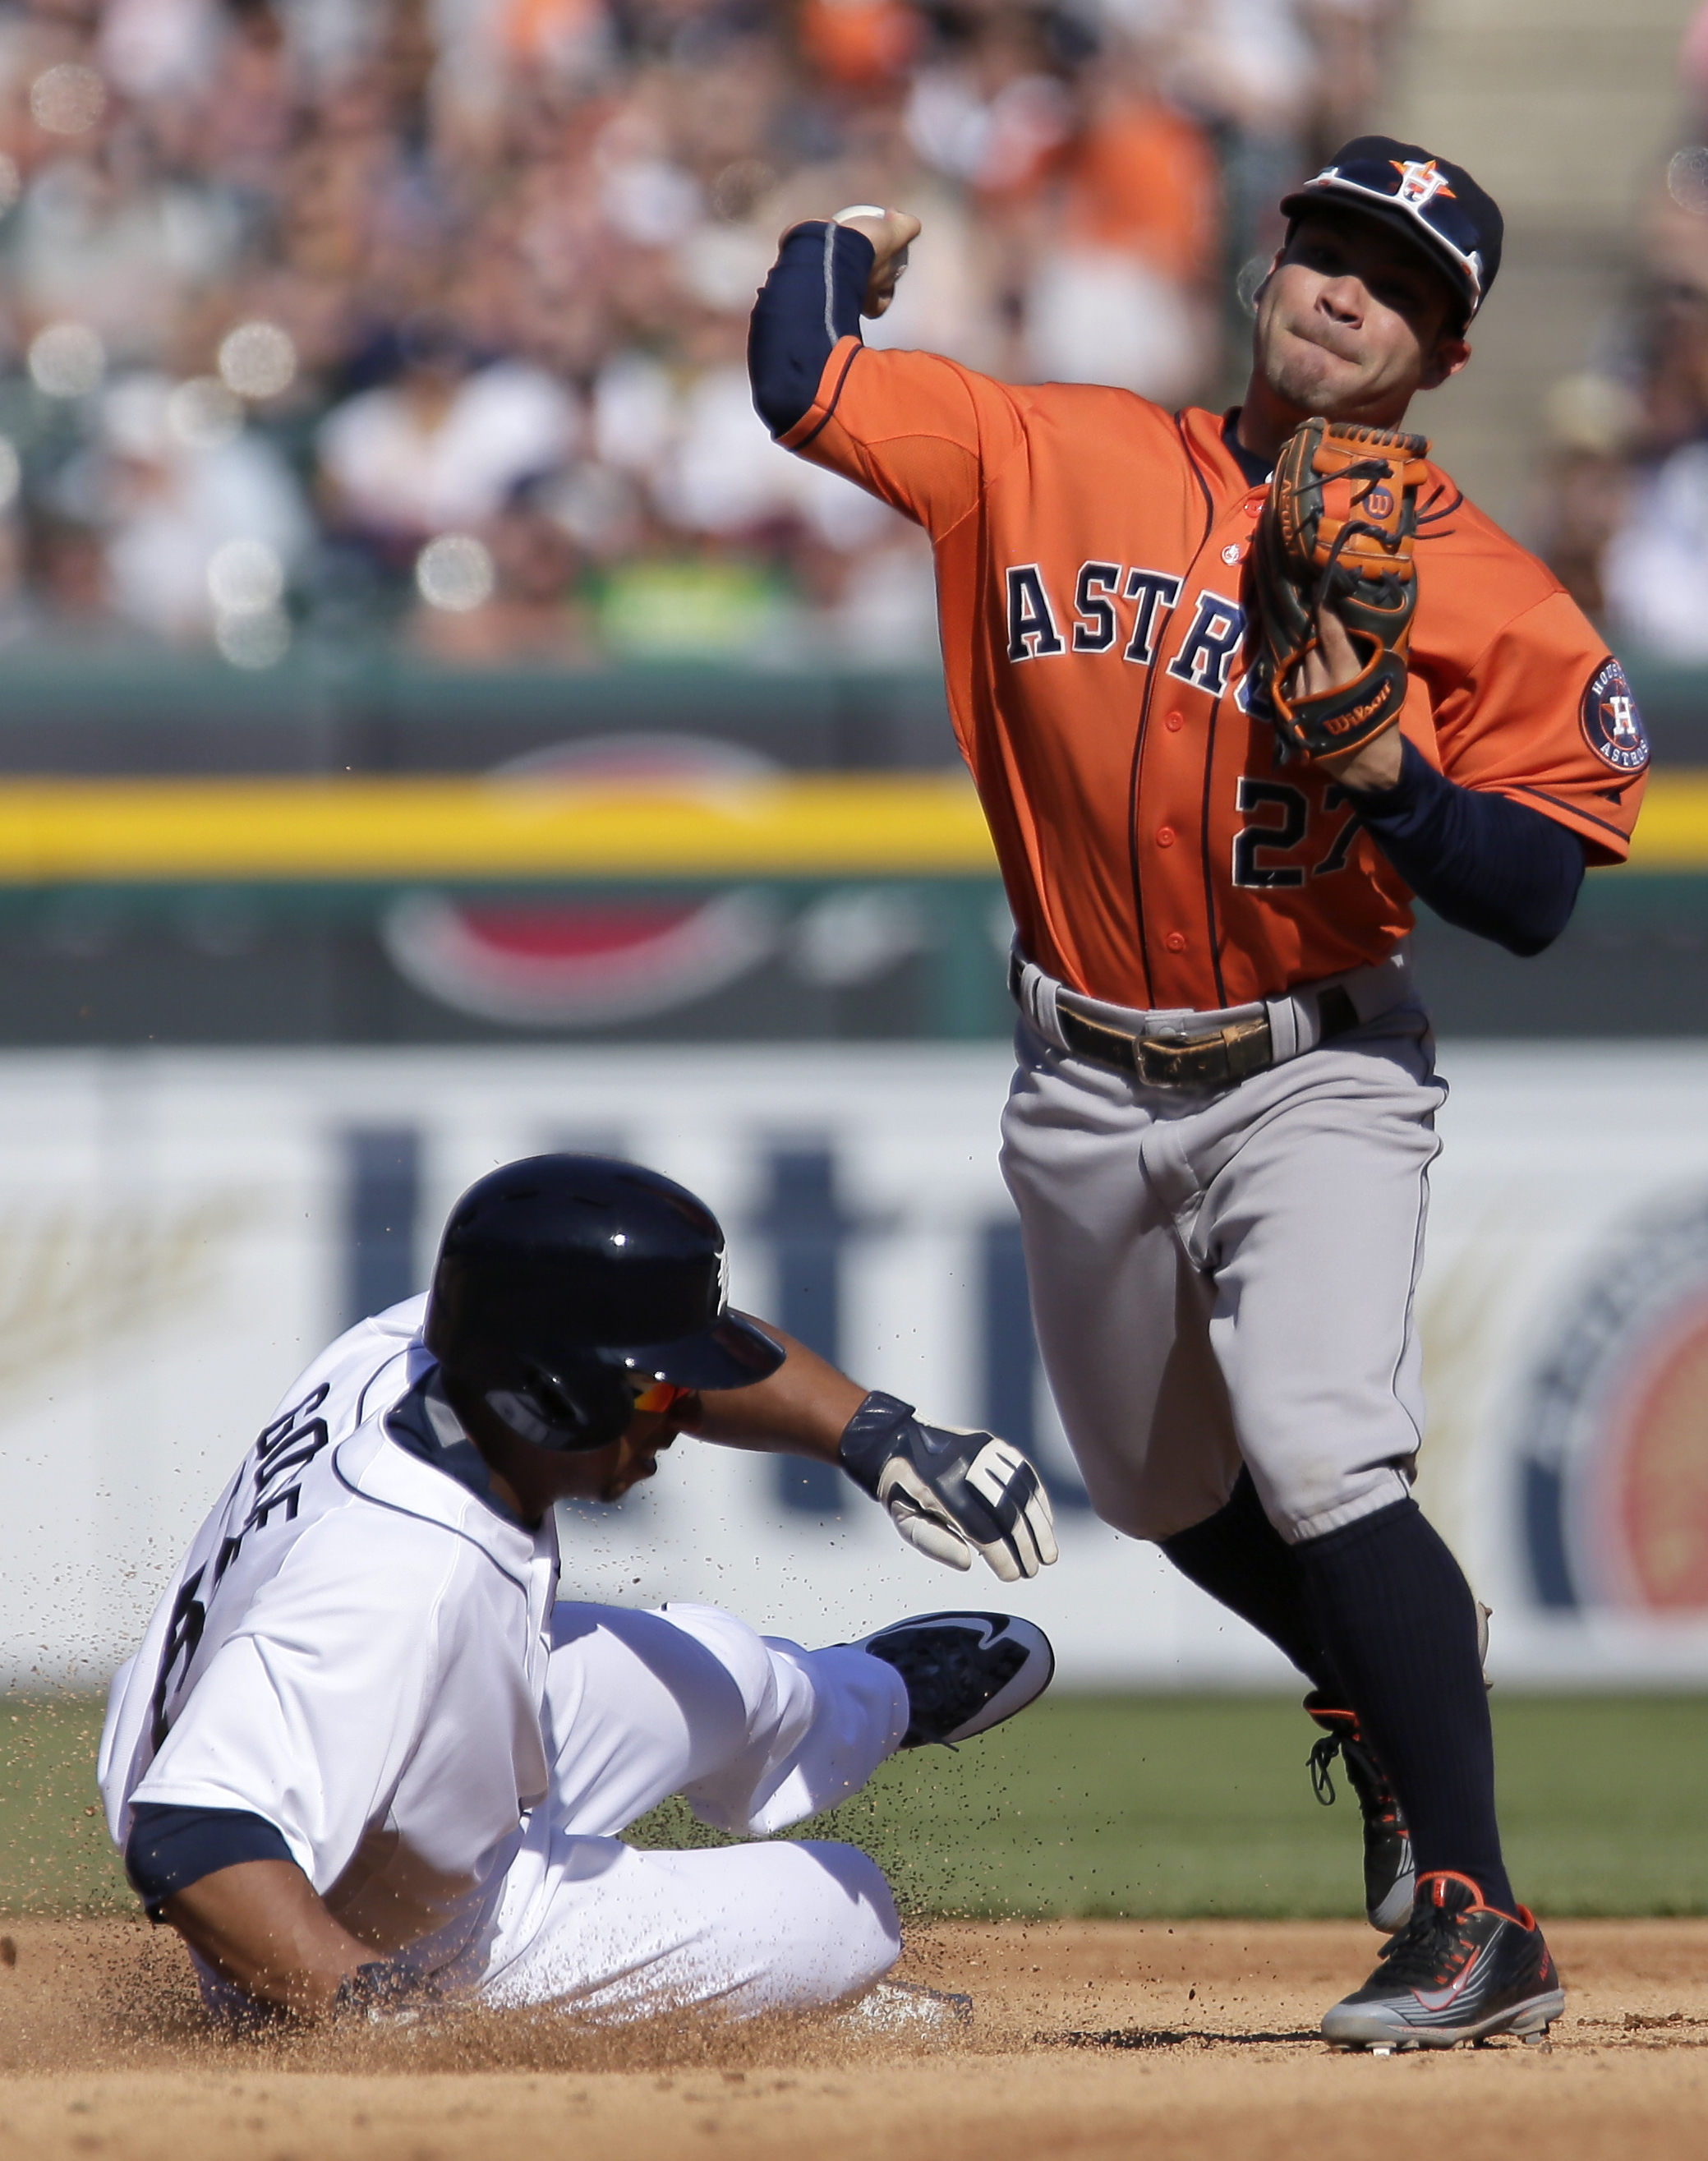 Houston Astros second baseman Jose Altuve (27) gets the force out on Detroit Tigers' Anthony Gose for the second out of a triple play during the fifth inning of a baseball game Saturday, May 23, 2015, in Detroit. Detroit's Ian Kinsler hit to Houston third